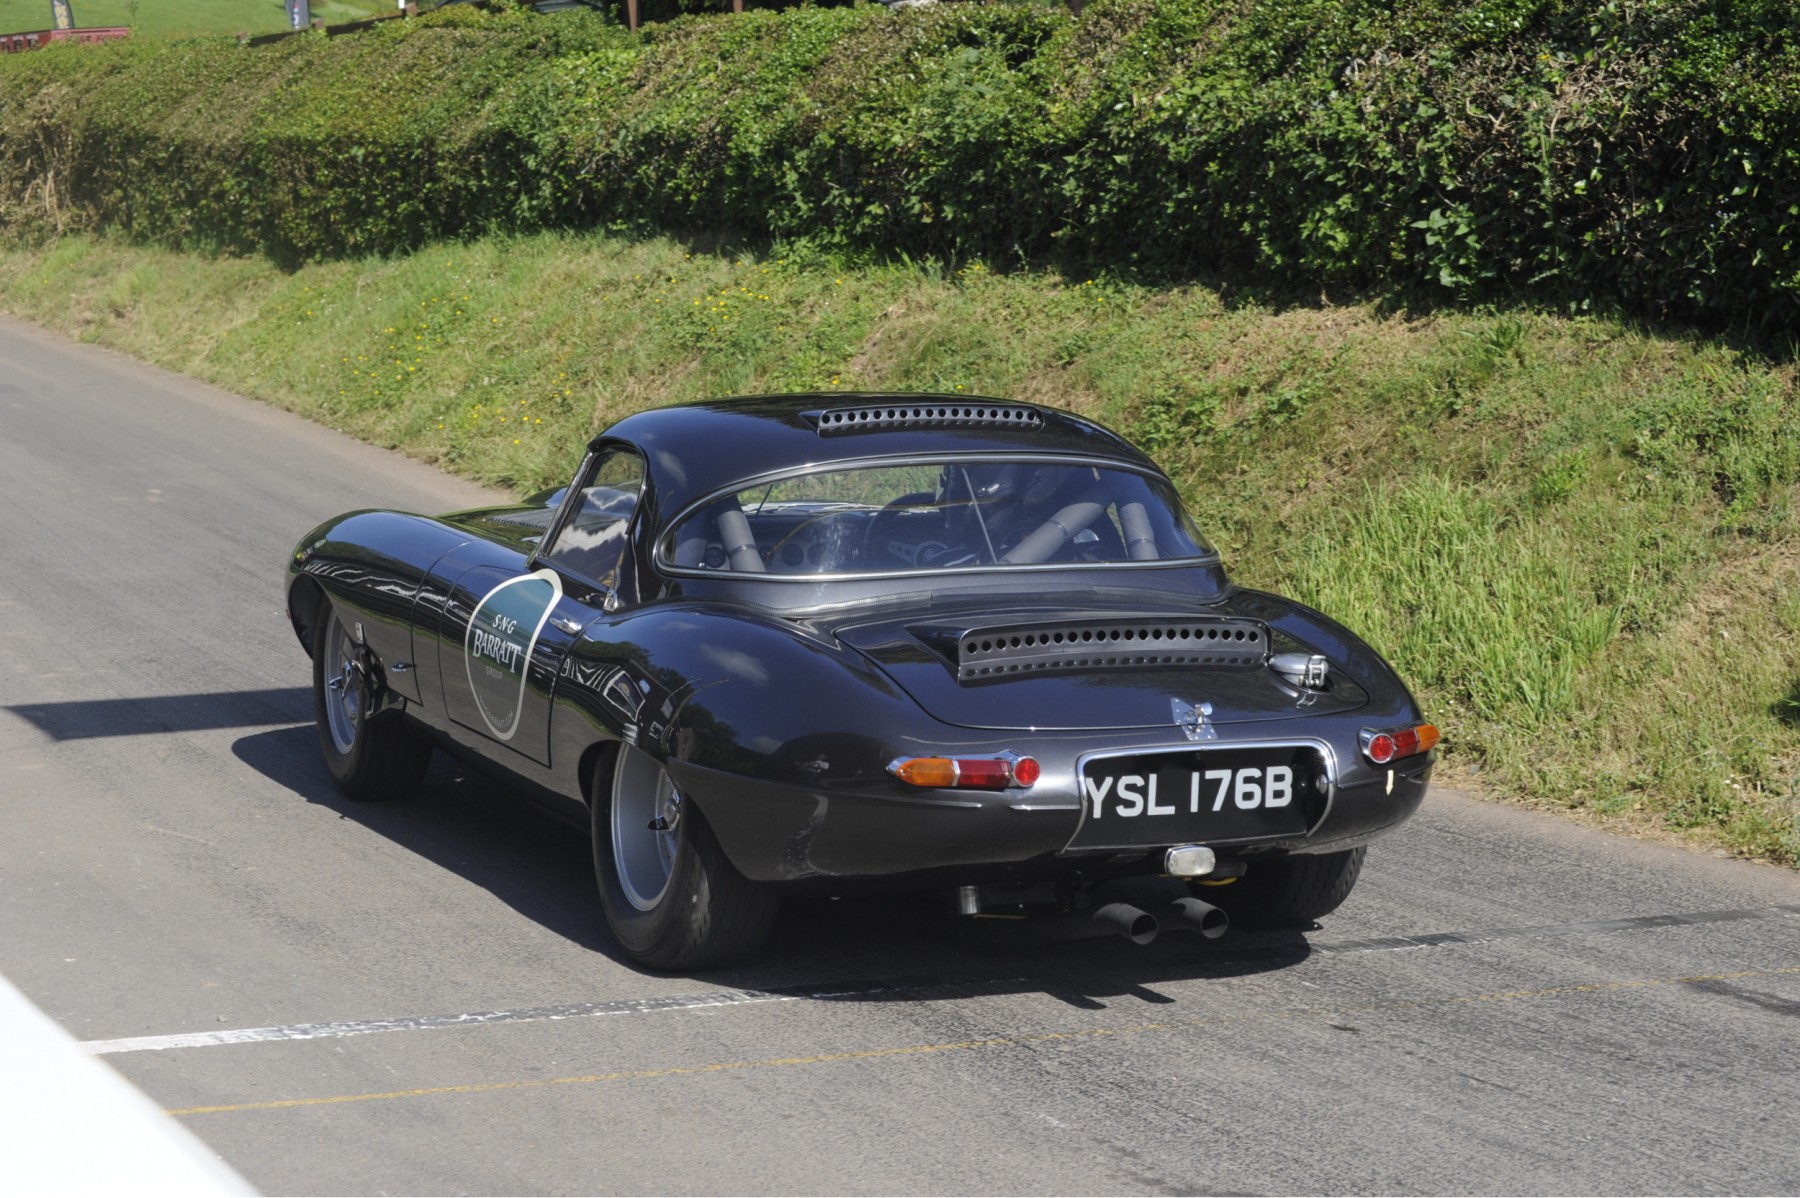 E-type-60-Saturday-photo-by-Abigail-Humphries-61